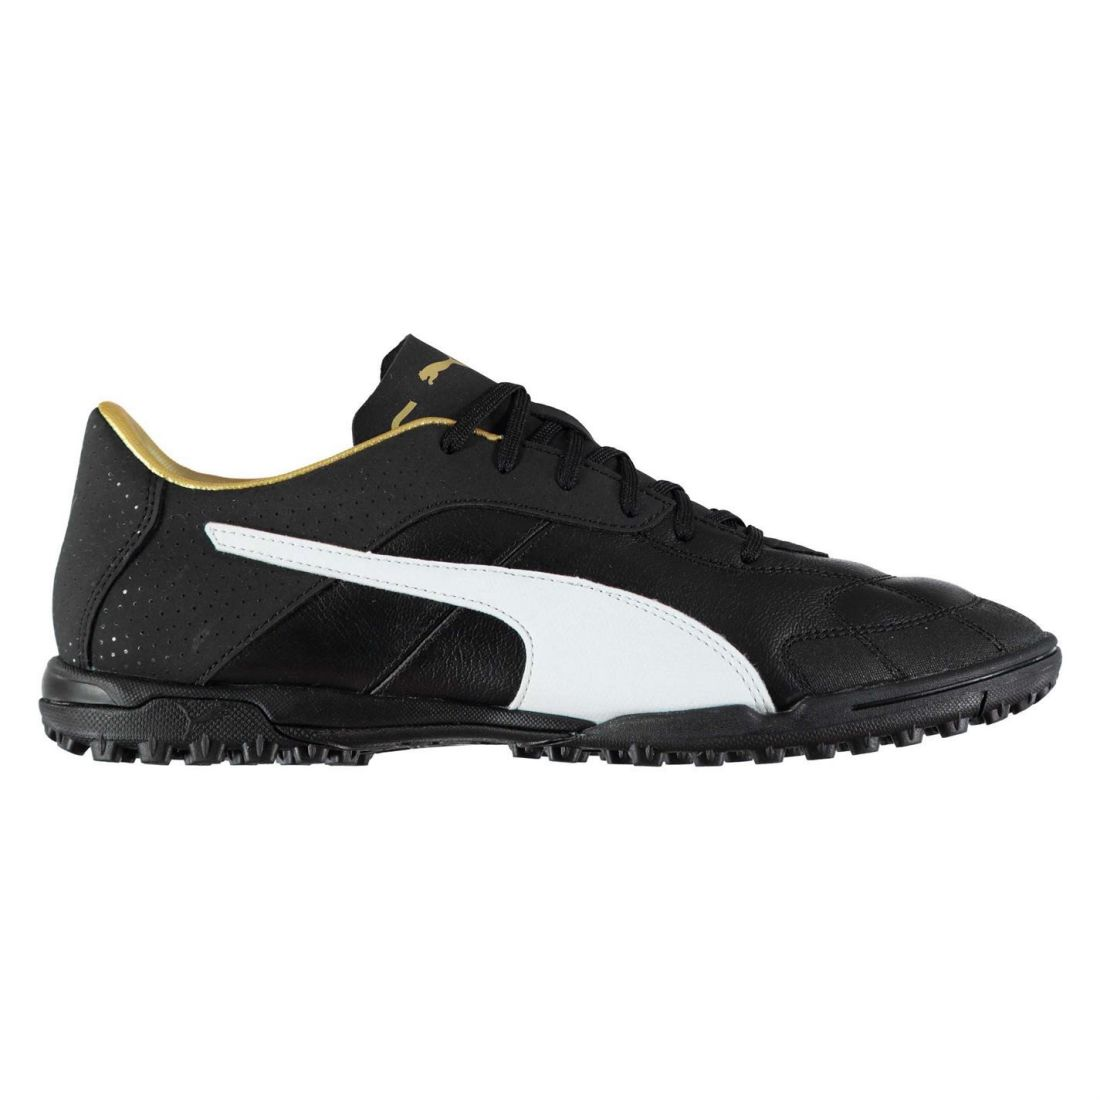 8f4d5827d7cd83 Details about Puma Mens Esito C TF Football Boots Astro Turf Lace Up Padded  Ankle Collar